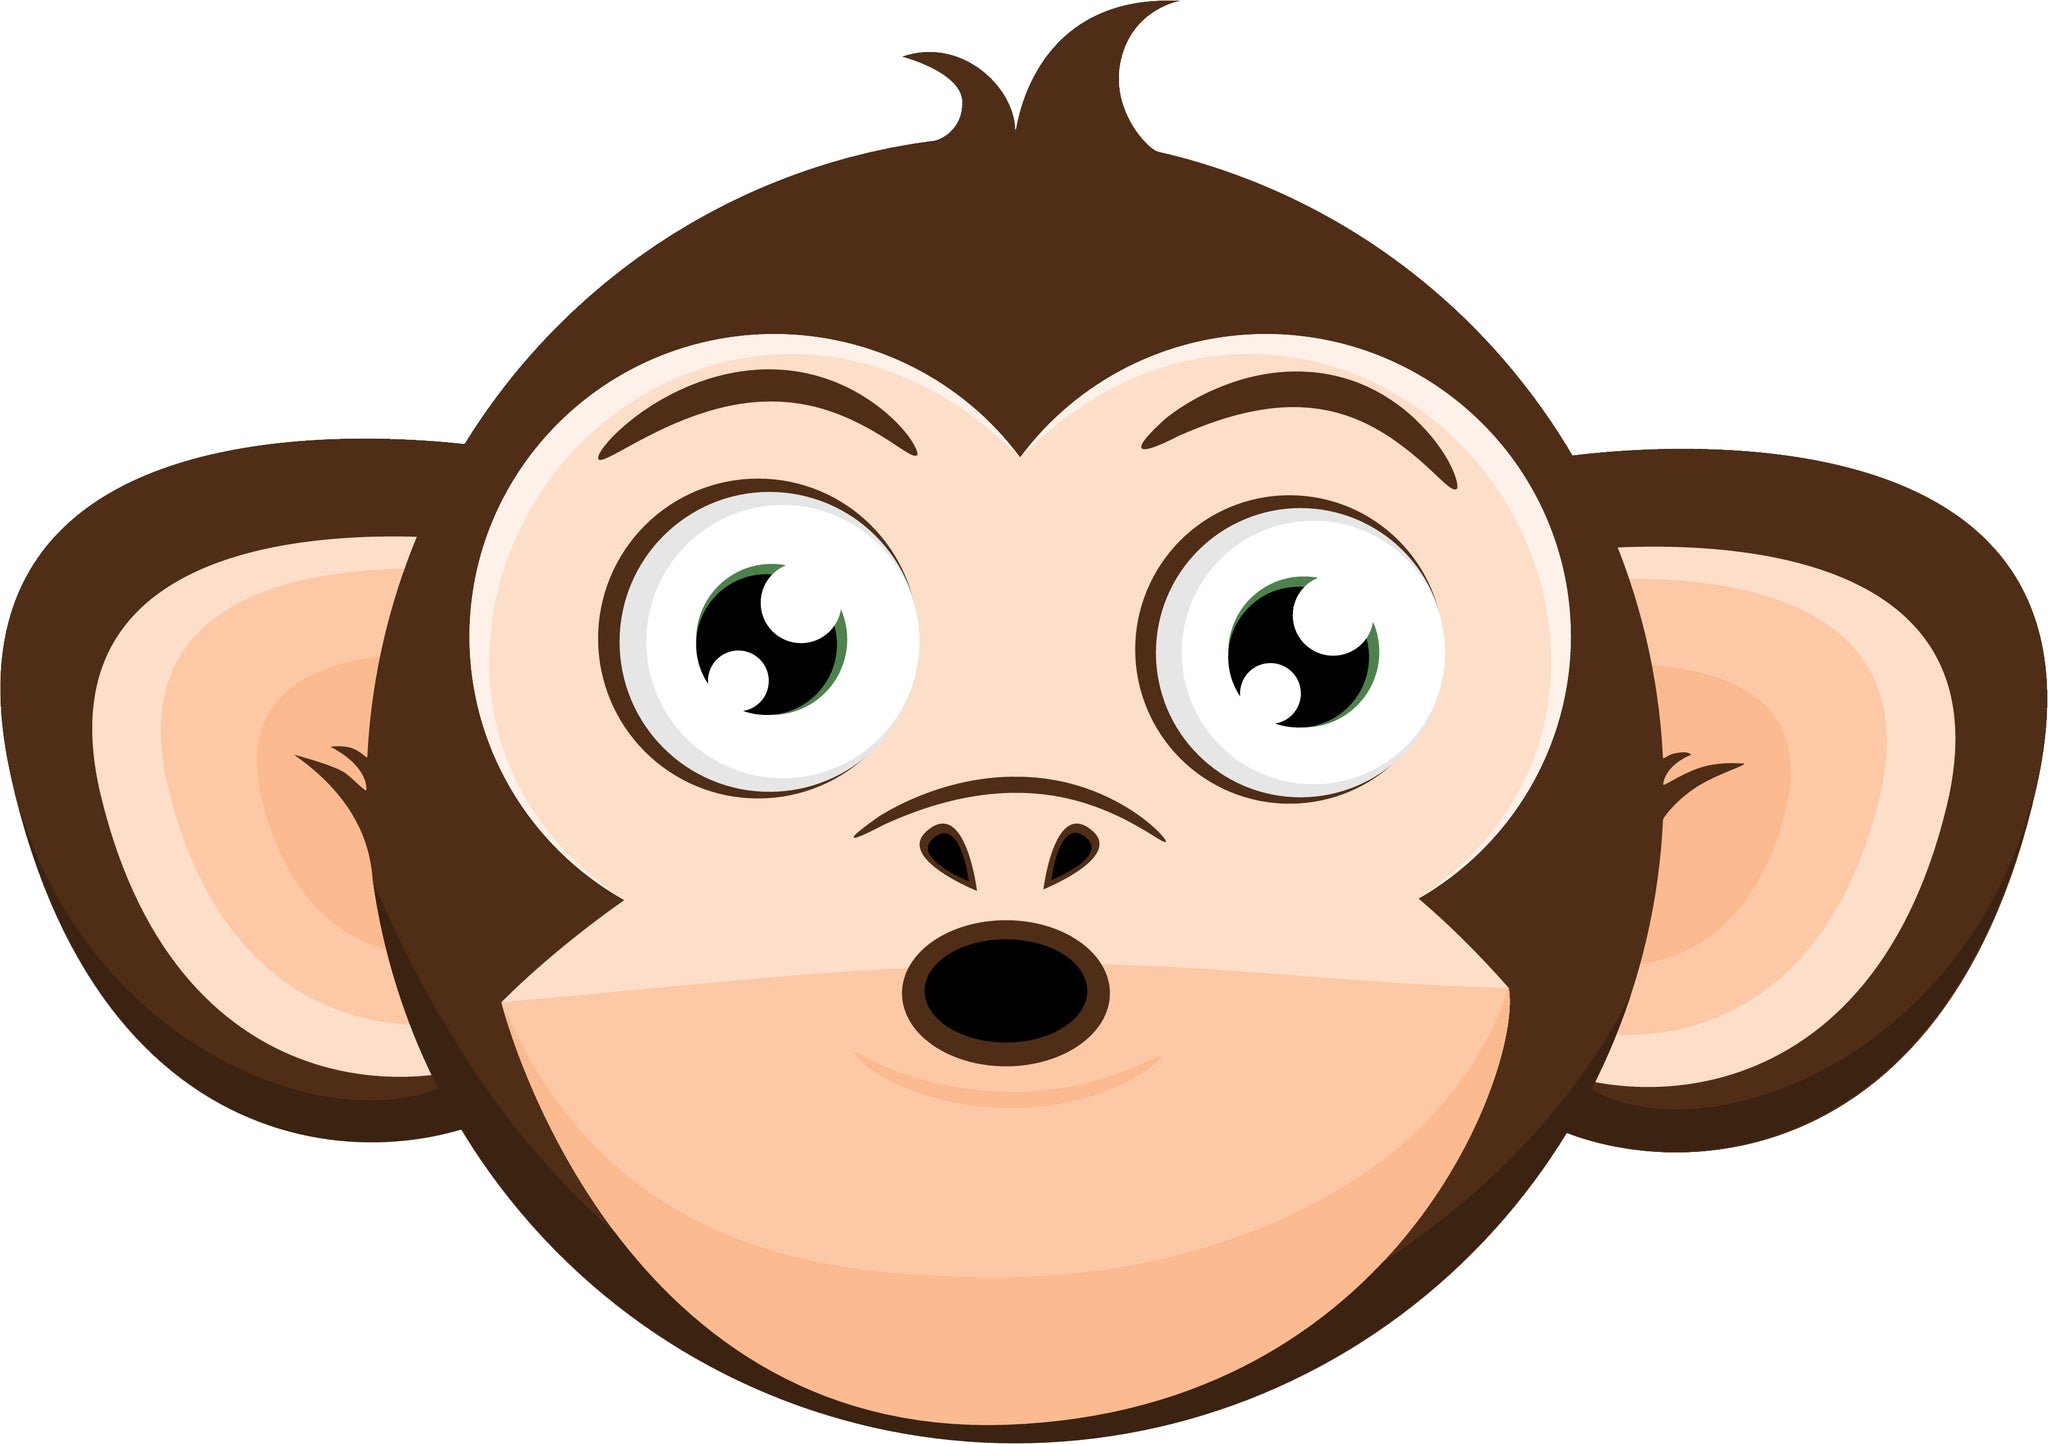 Simple Silly Curious Monkey Cartoon Emoji Head #2 Vinyl Decal Sticker